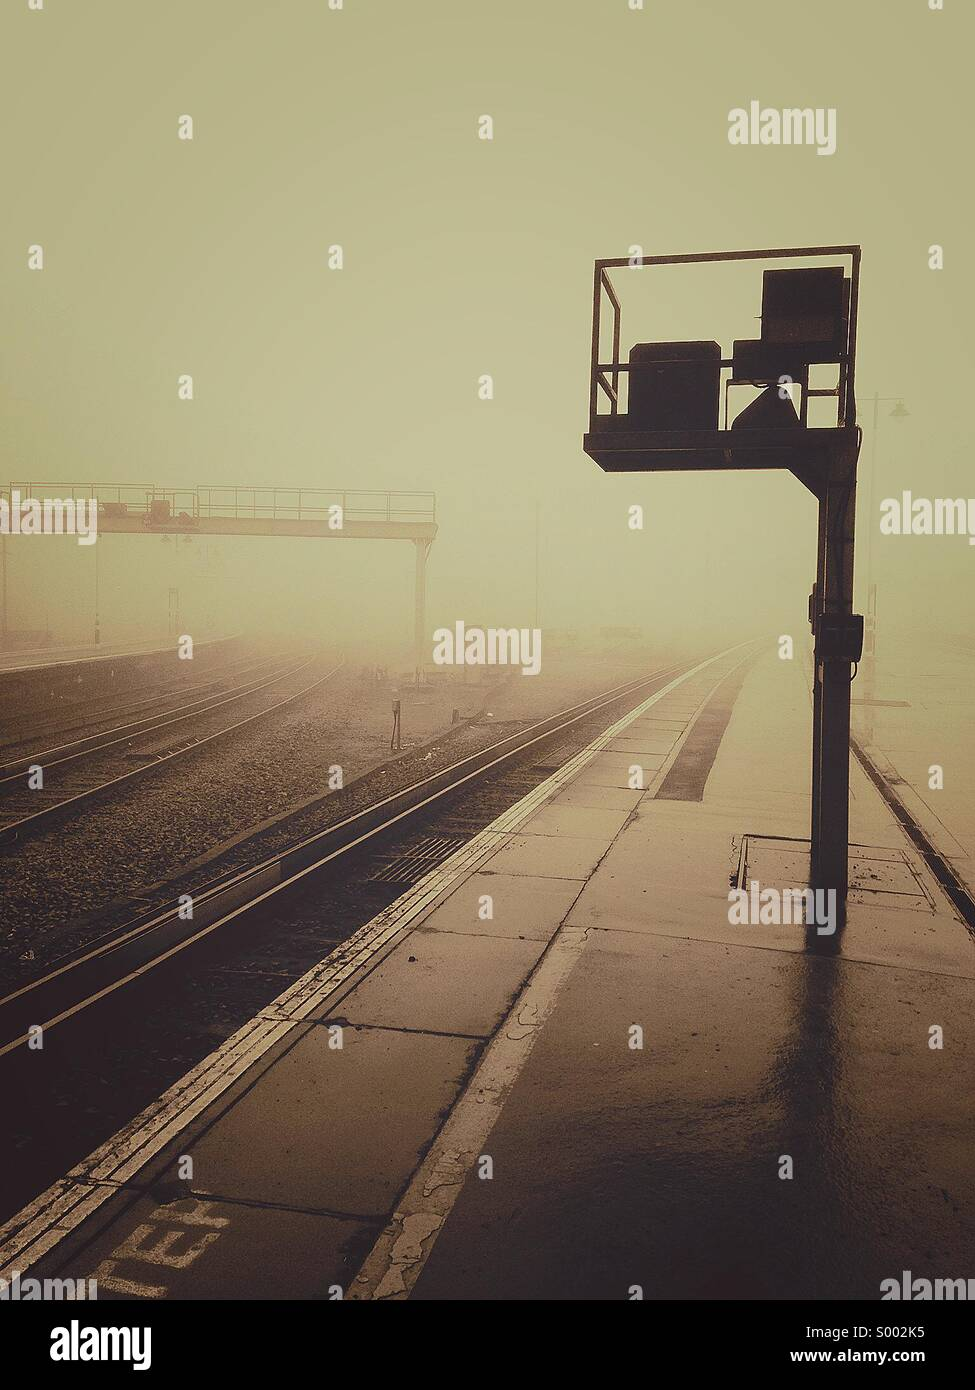 Foggy train station - Stock Image